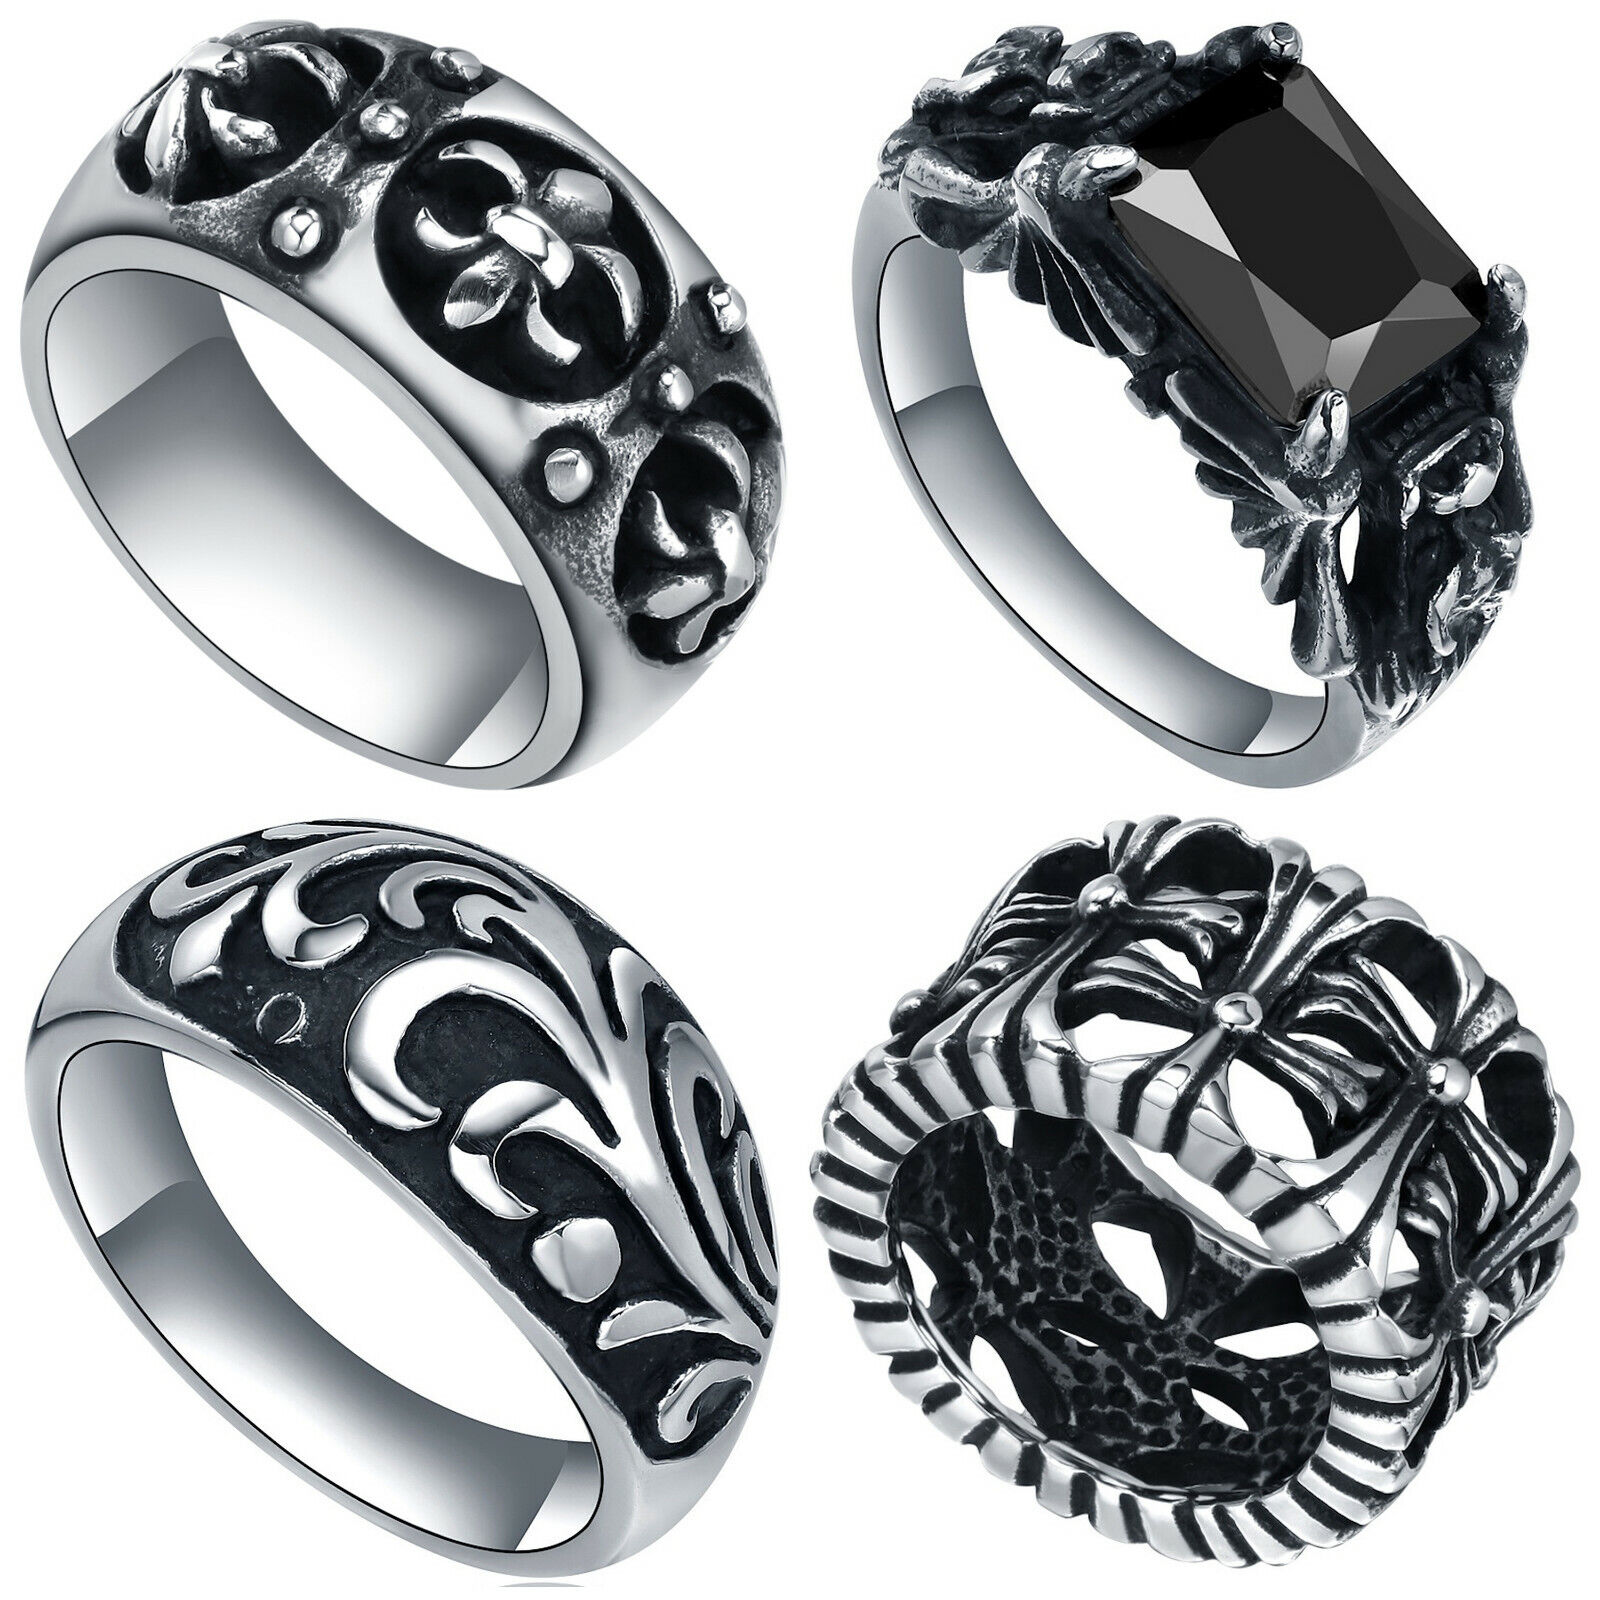 Mens Stainless Steel Vintage Cross, Fleur De Lis, Floral, or Crystal Ring Jewelry & Watches